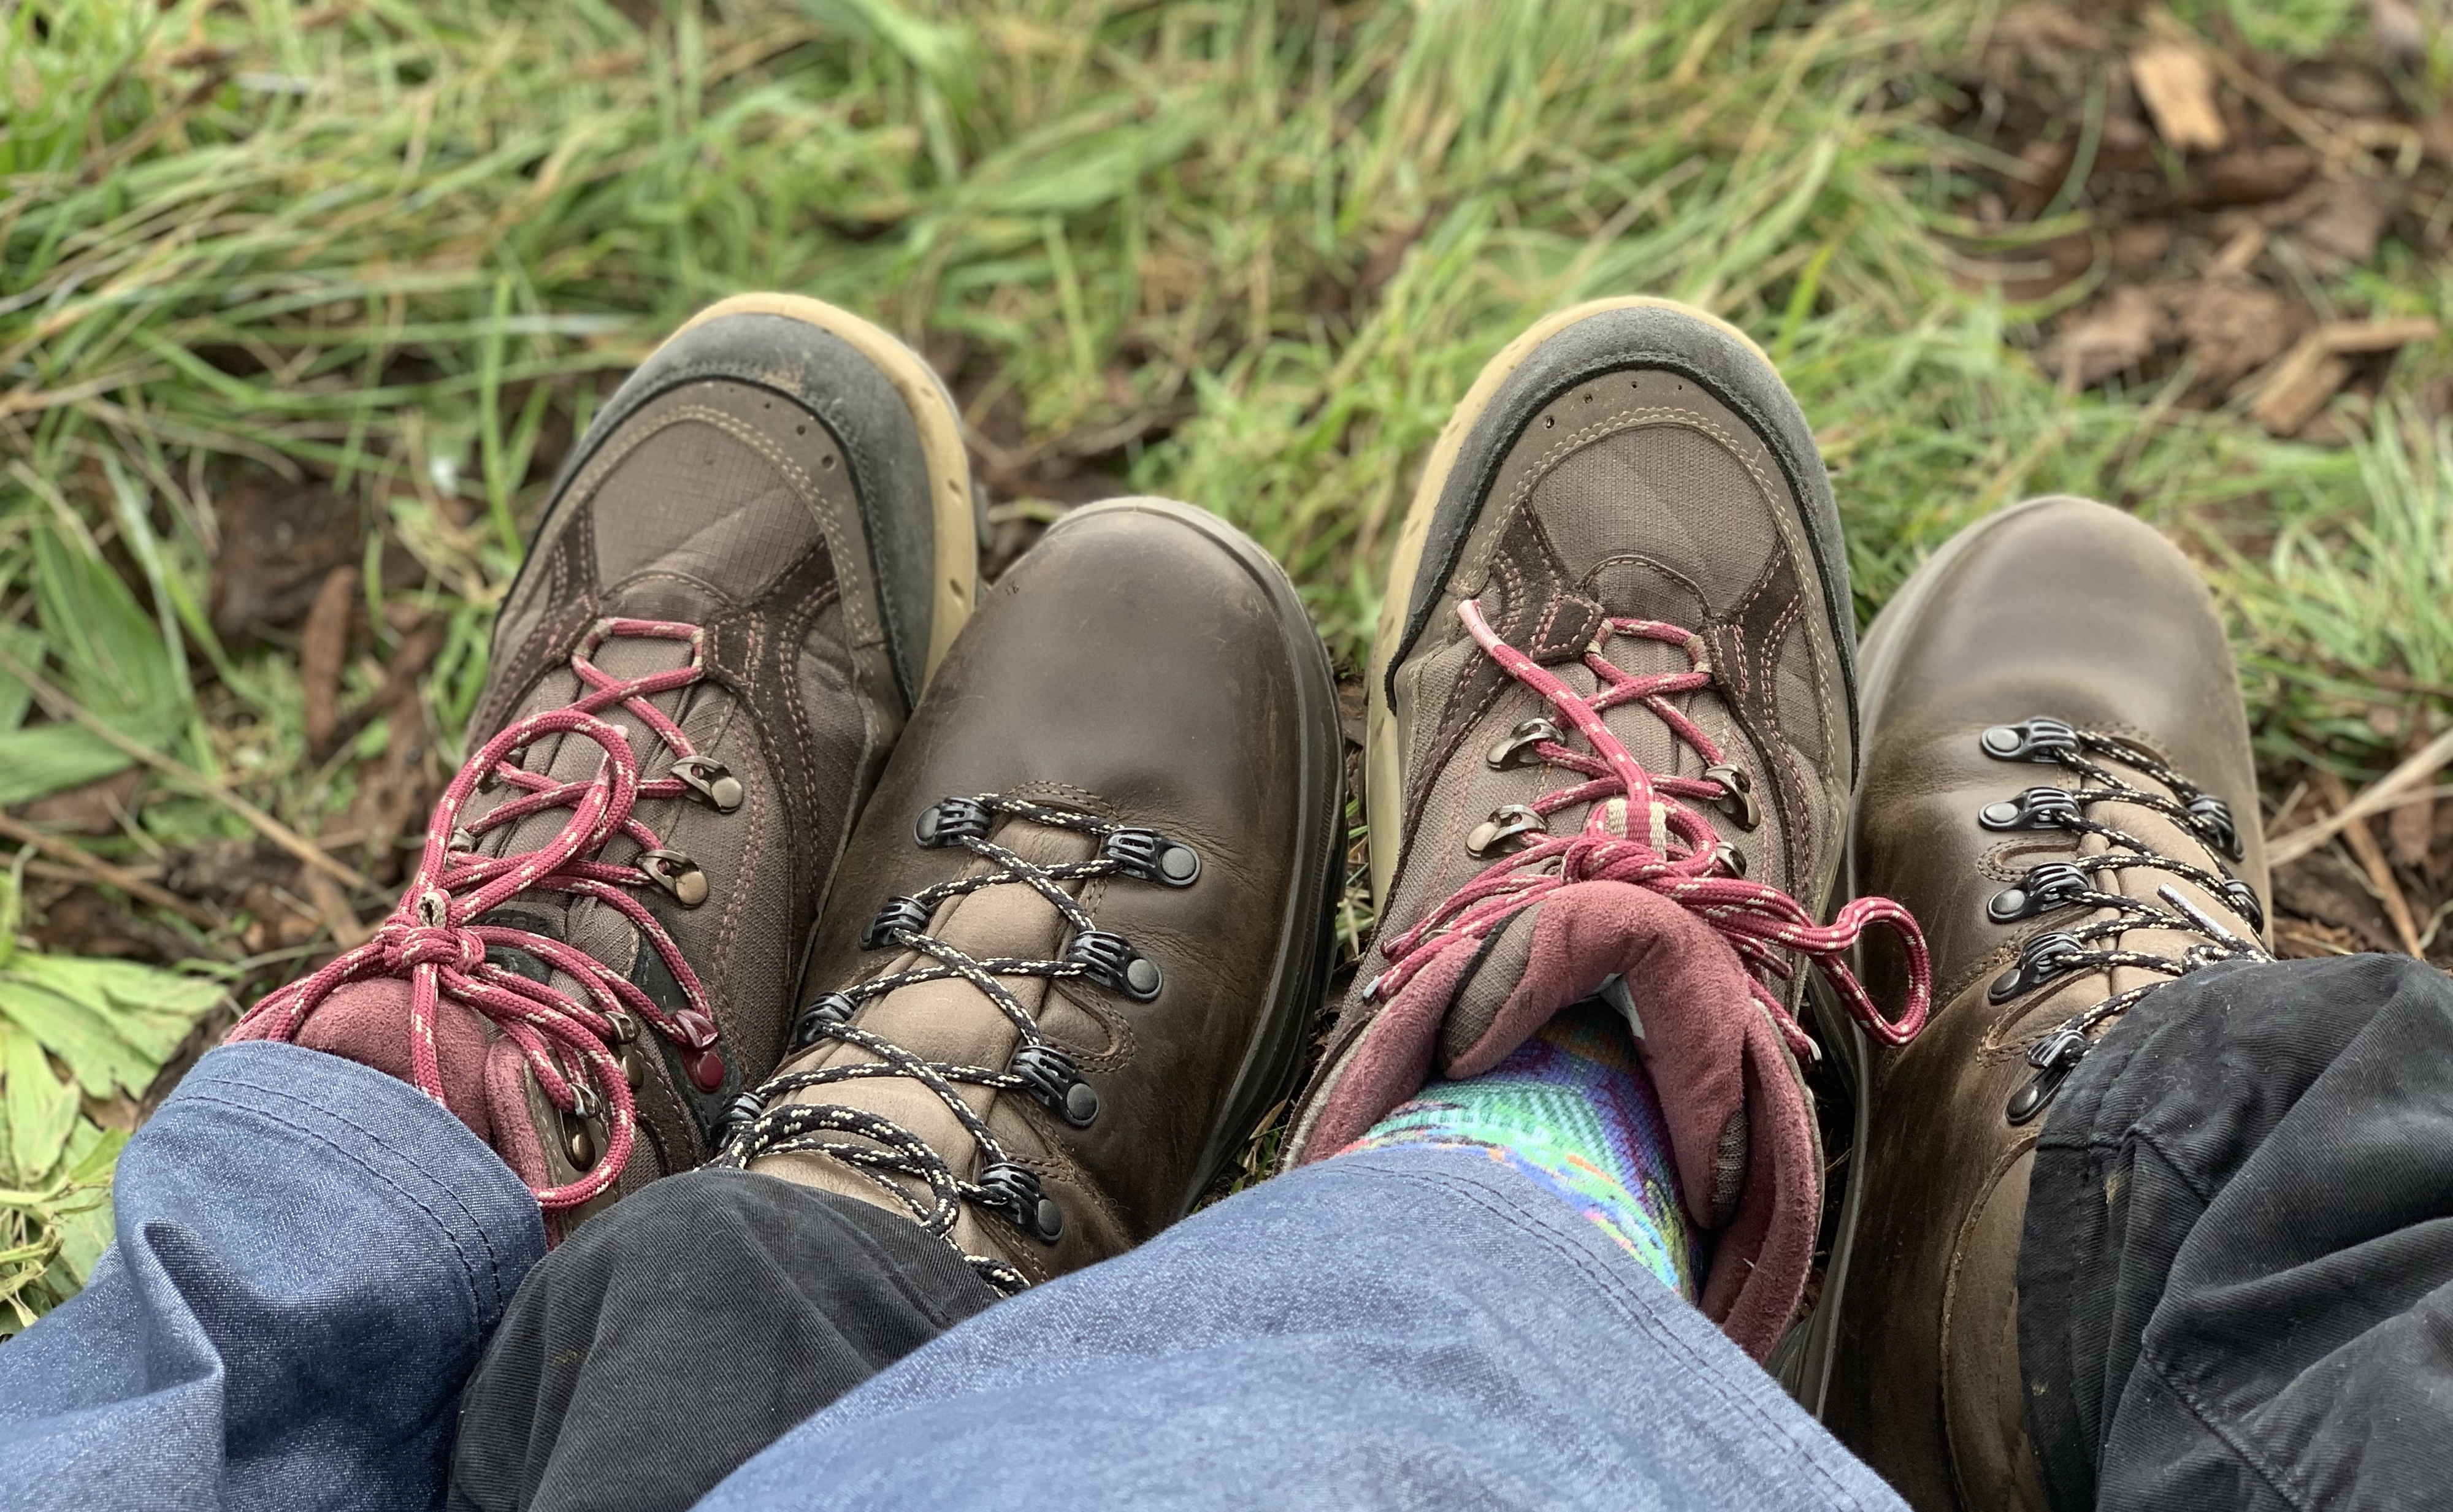 Two pairs of hiking shoes alternating between each other on green grass.